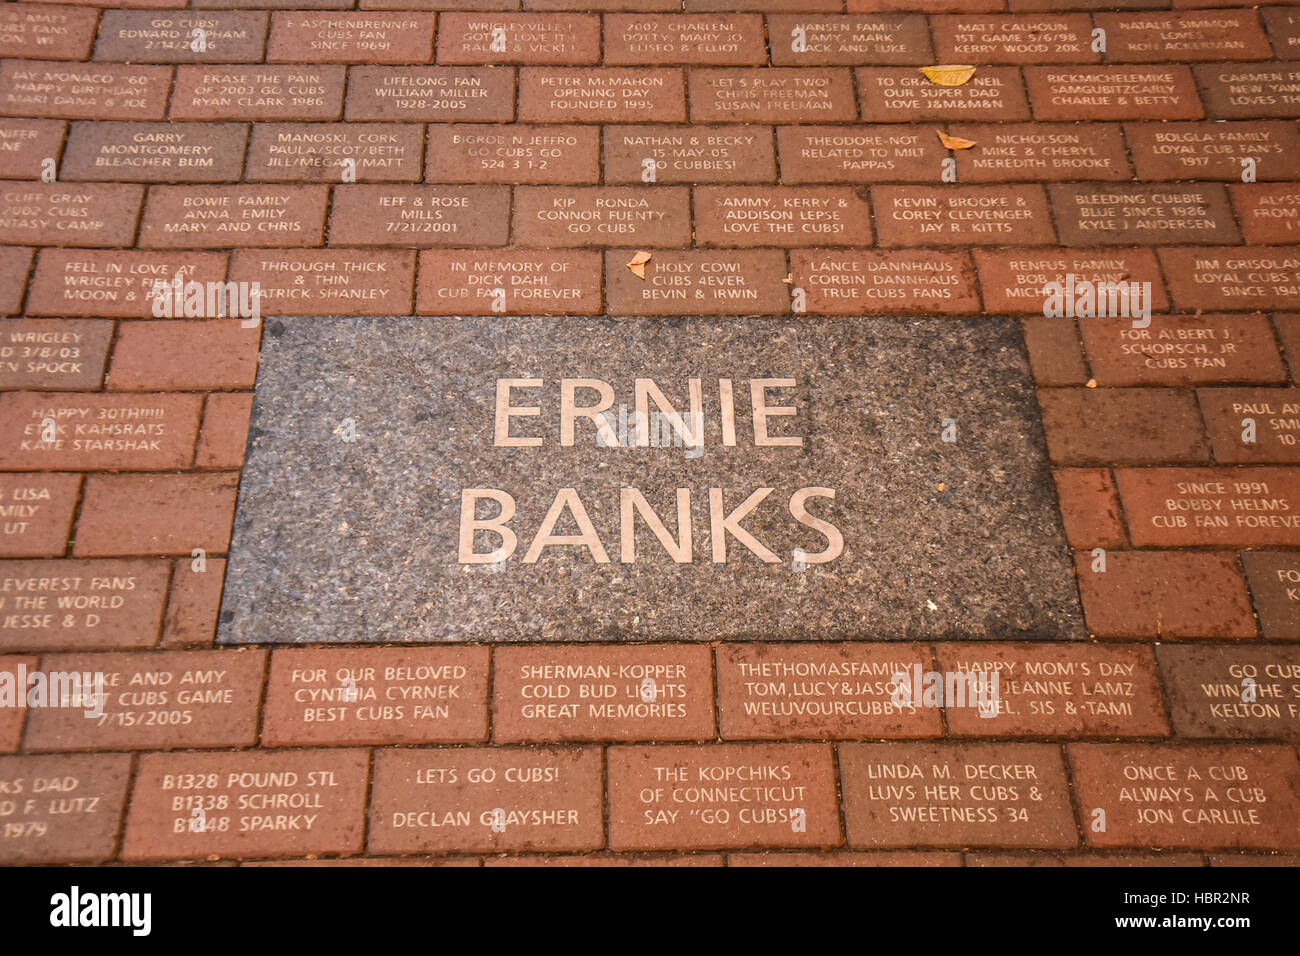 Ernie Banks sidewalk plaque. Wrigley Field is a baseball park located on the North Side of Chicago, Illinois. It - Stock Image